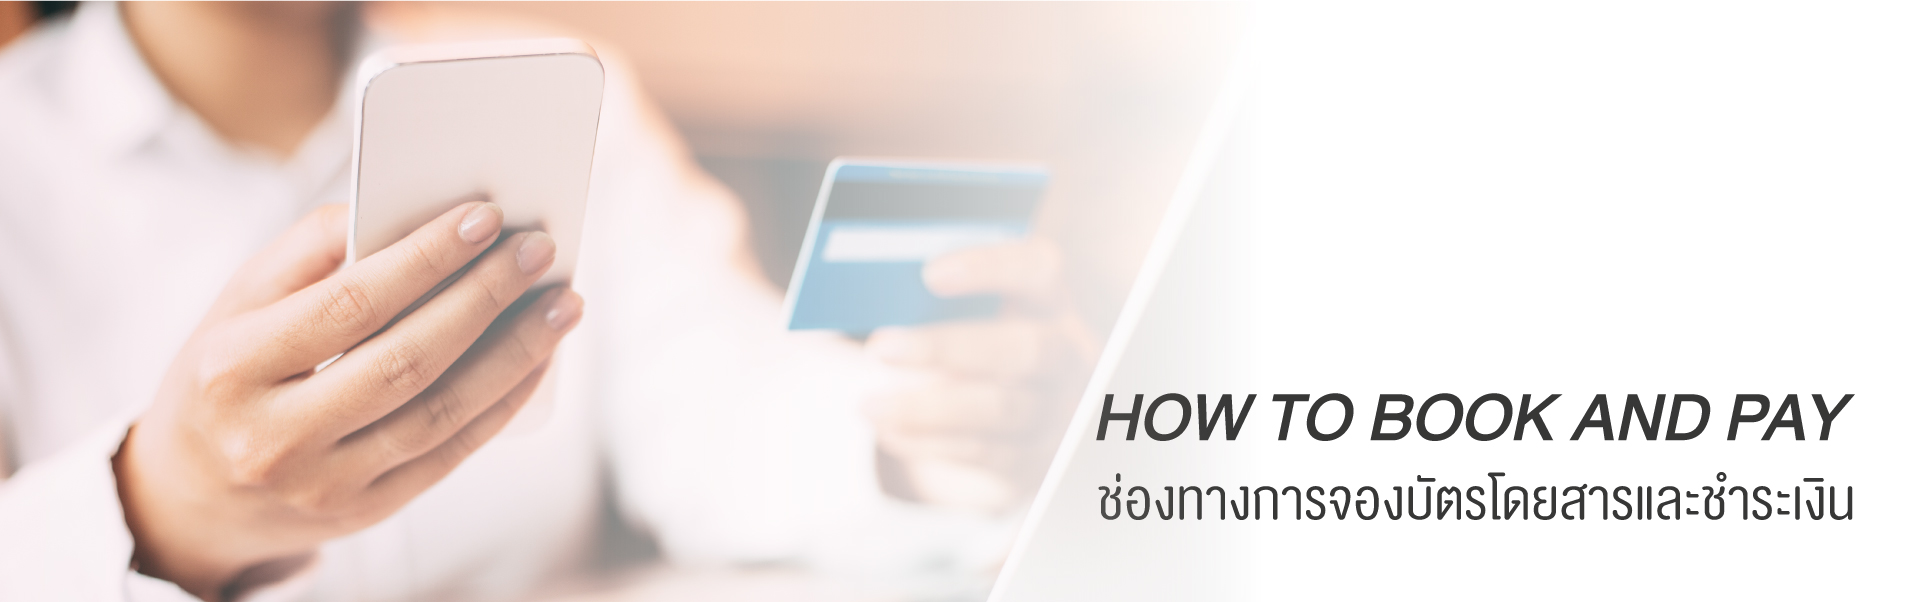 How To Book And Pay